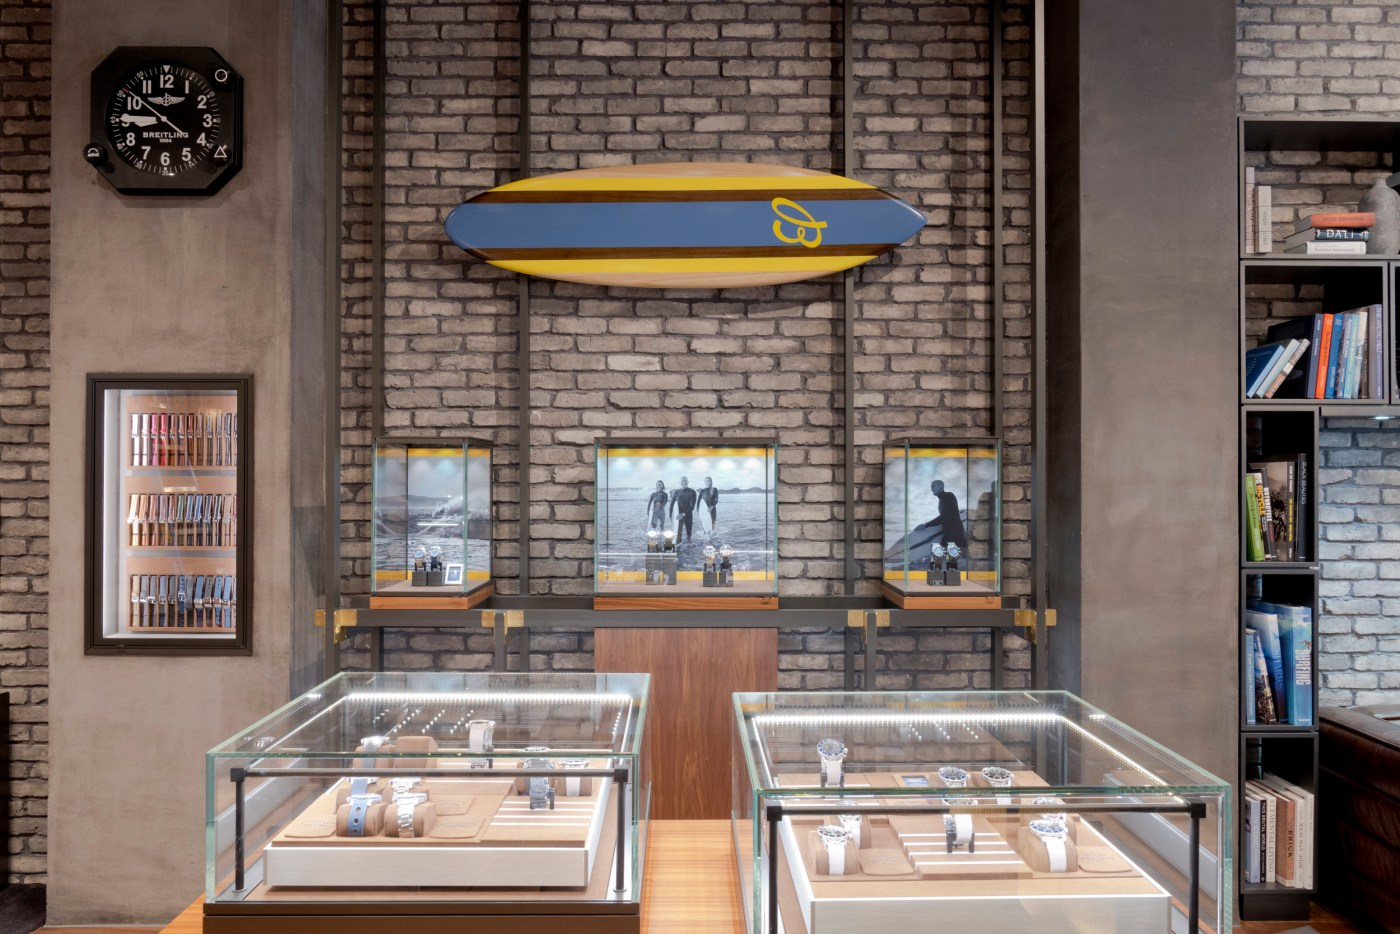 Breitling Boutique at Wynn Plaza Shops in Las Vegas